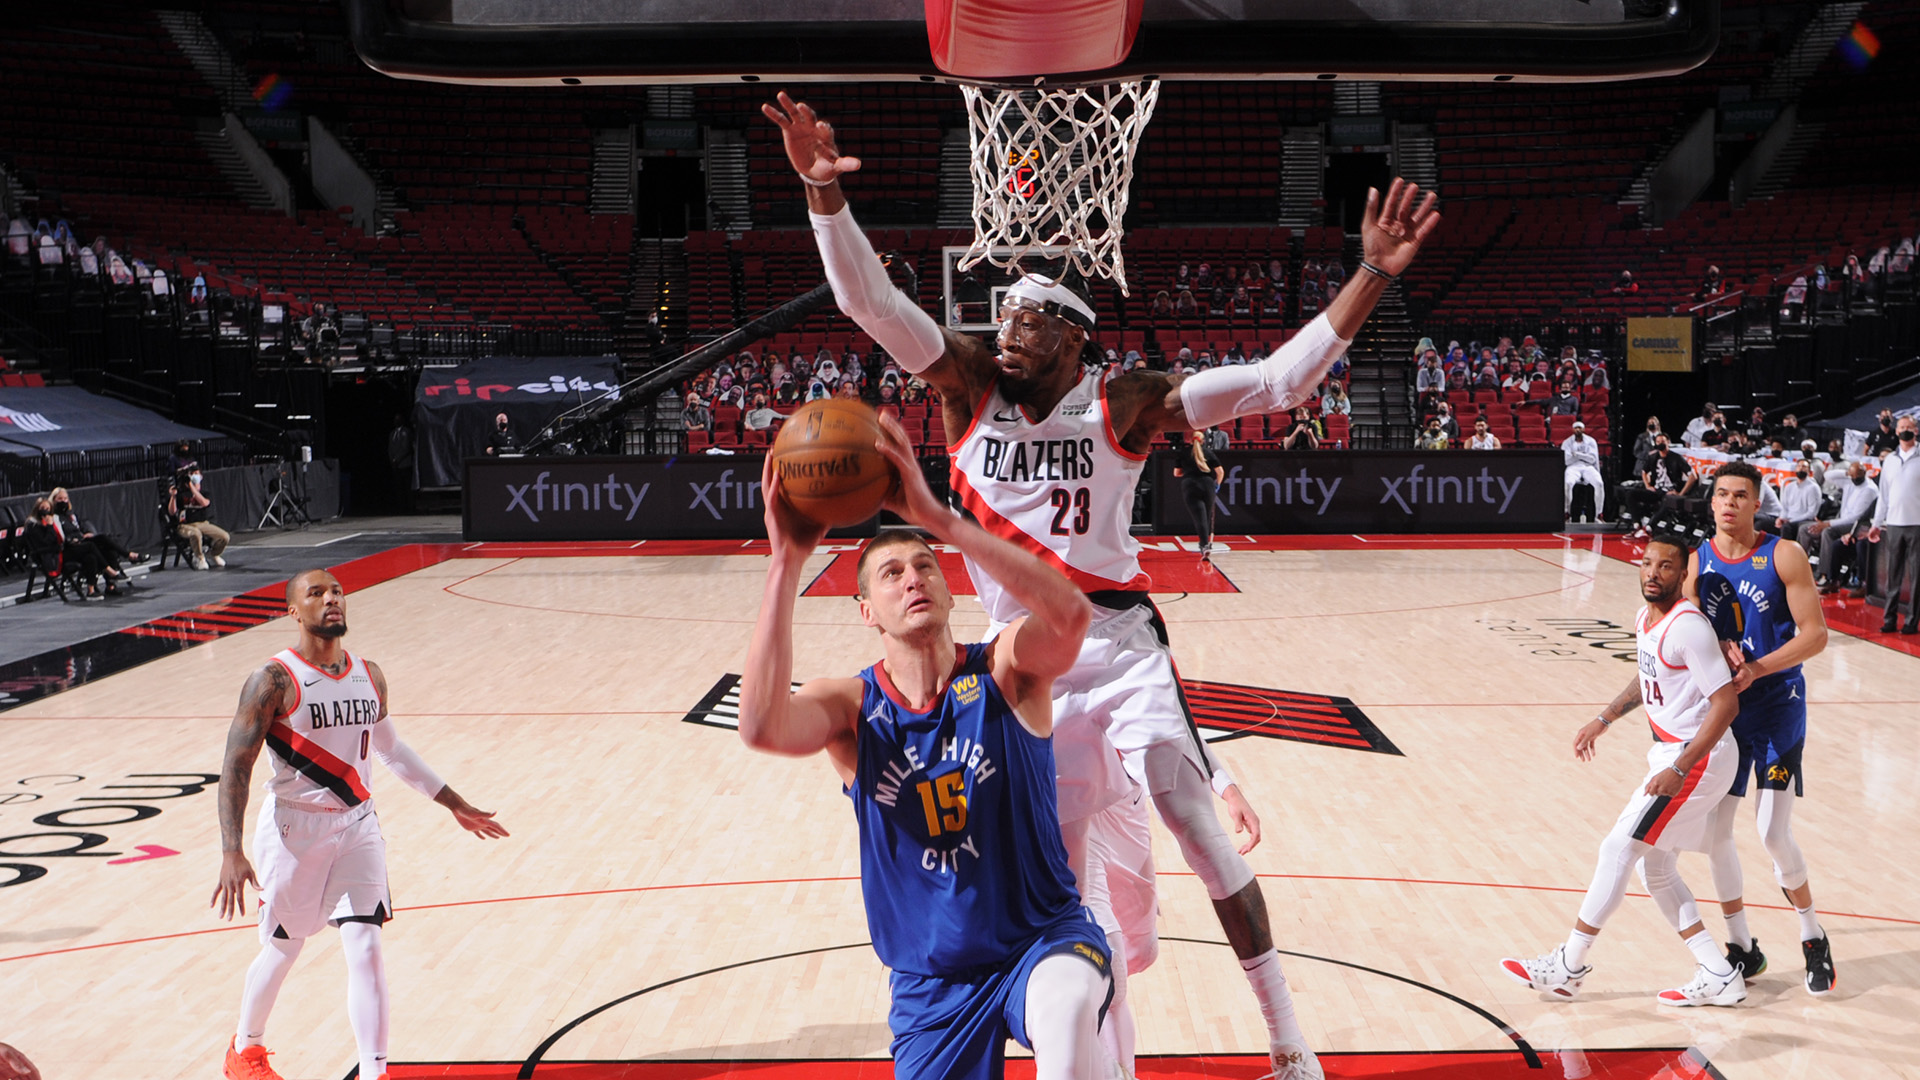 Nuggets evade Blazers in back-and-forth game